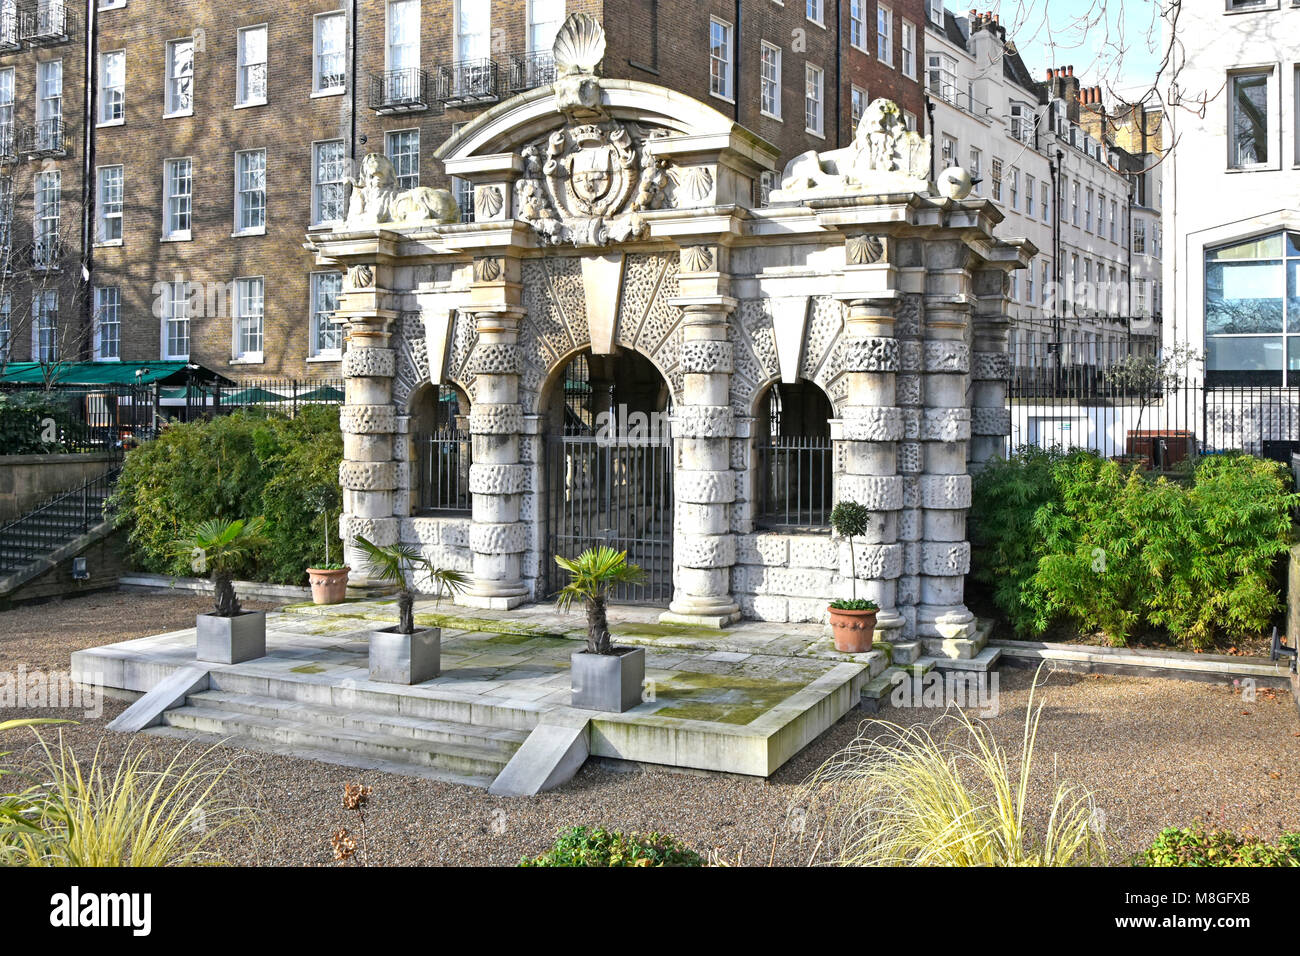 Winter view of the historical Italianate York Water Gate a Watergate that marks shoreline of River Thames before - Stock Image